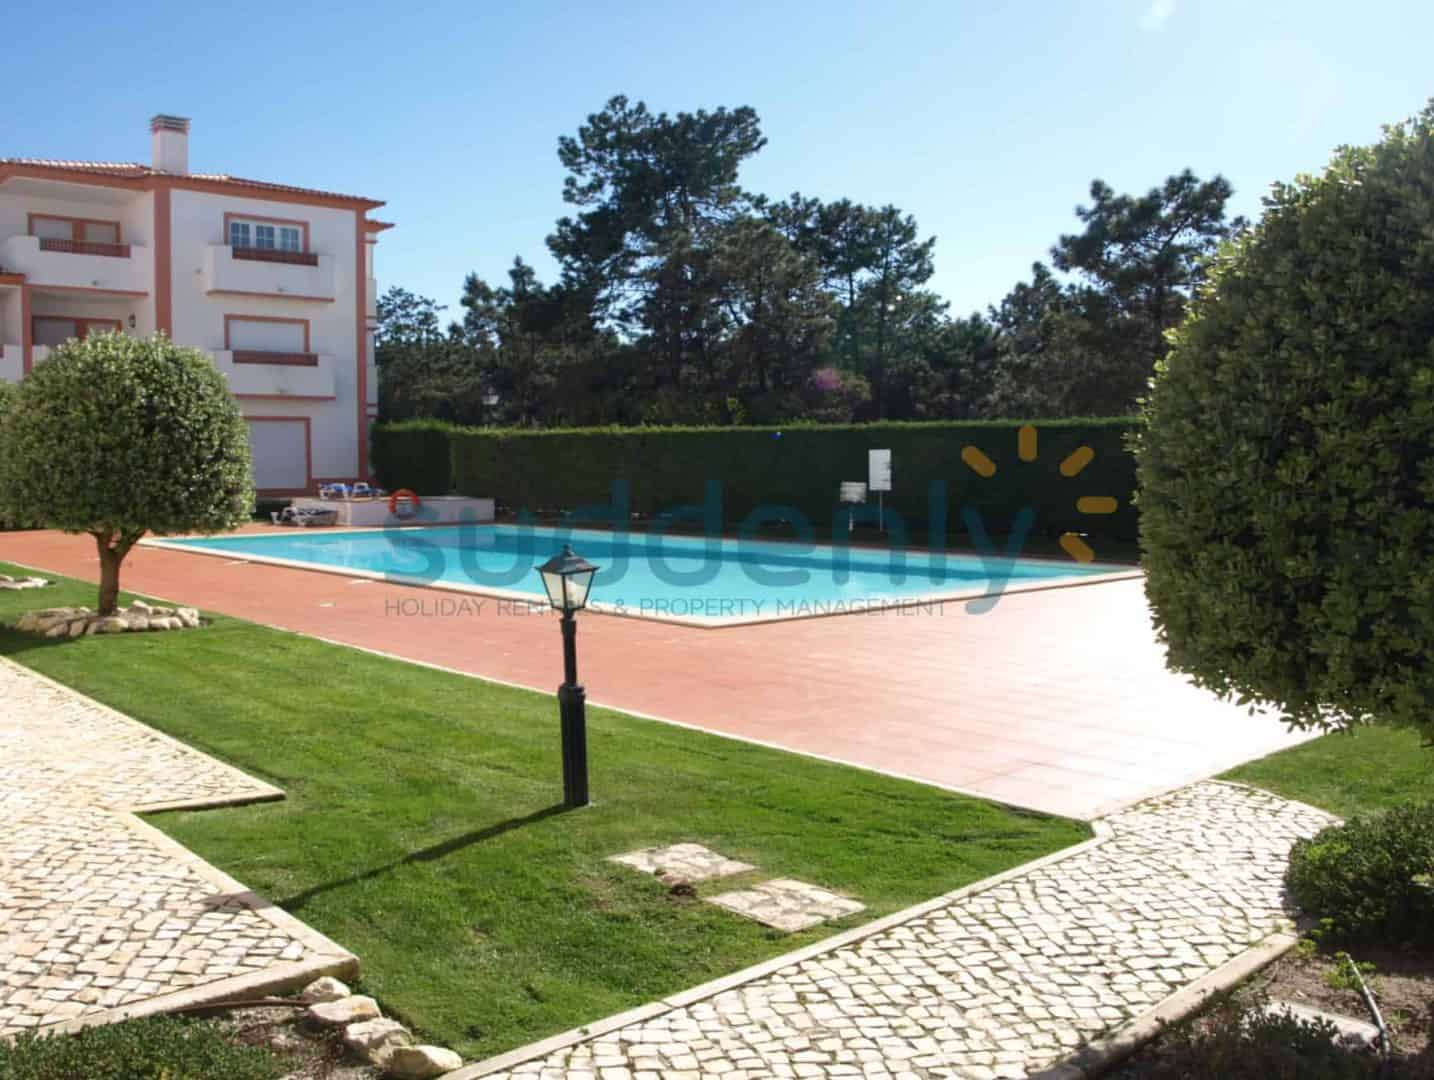 Holiday Rentals in Praia D'El Rey 100